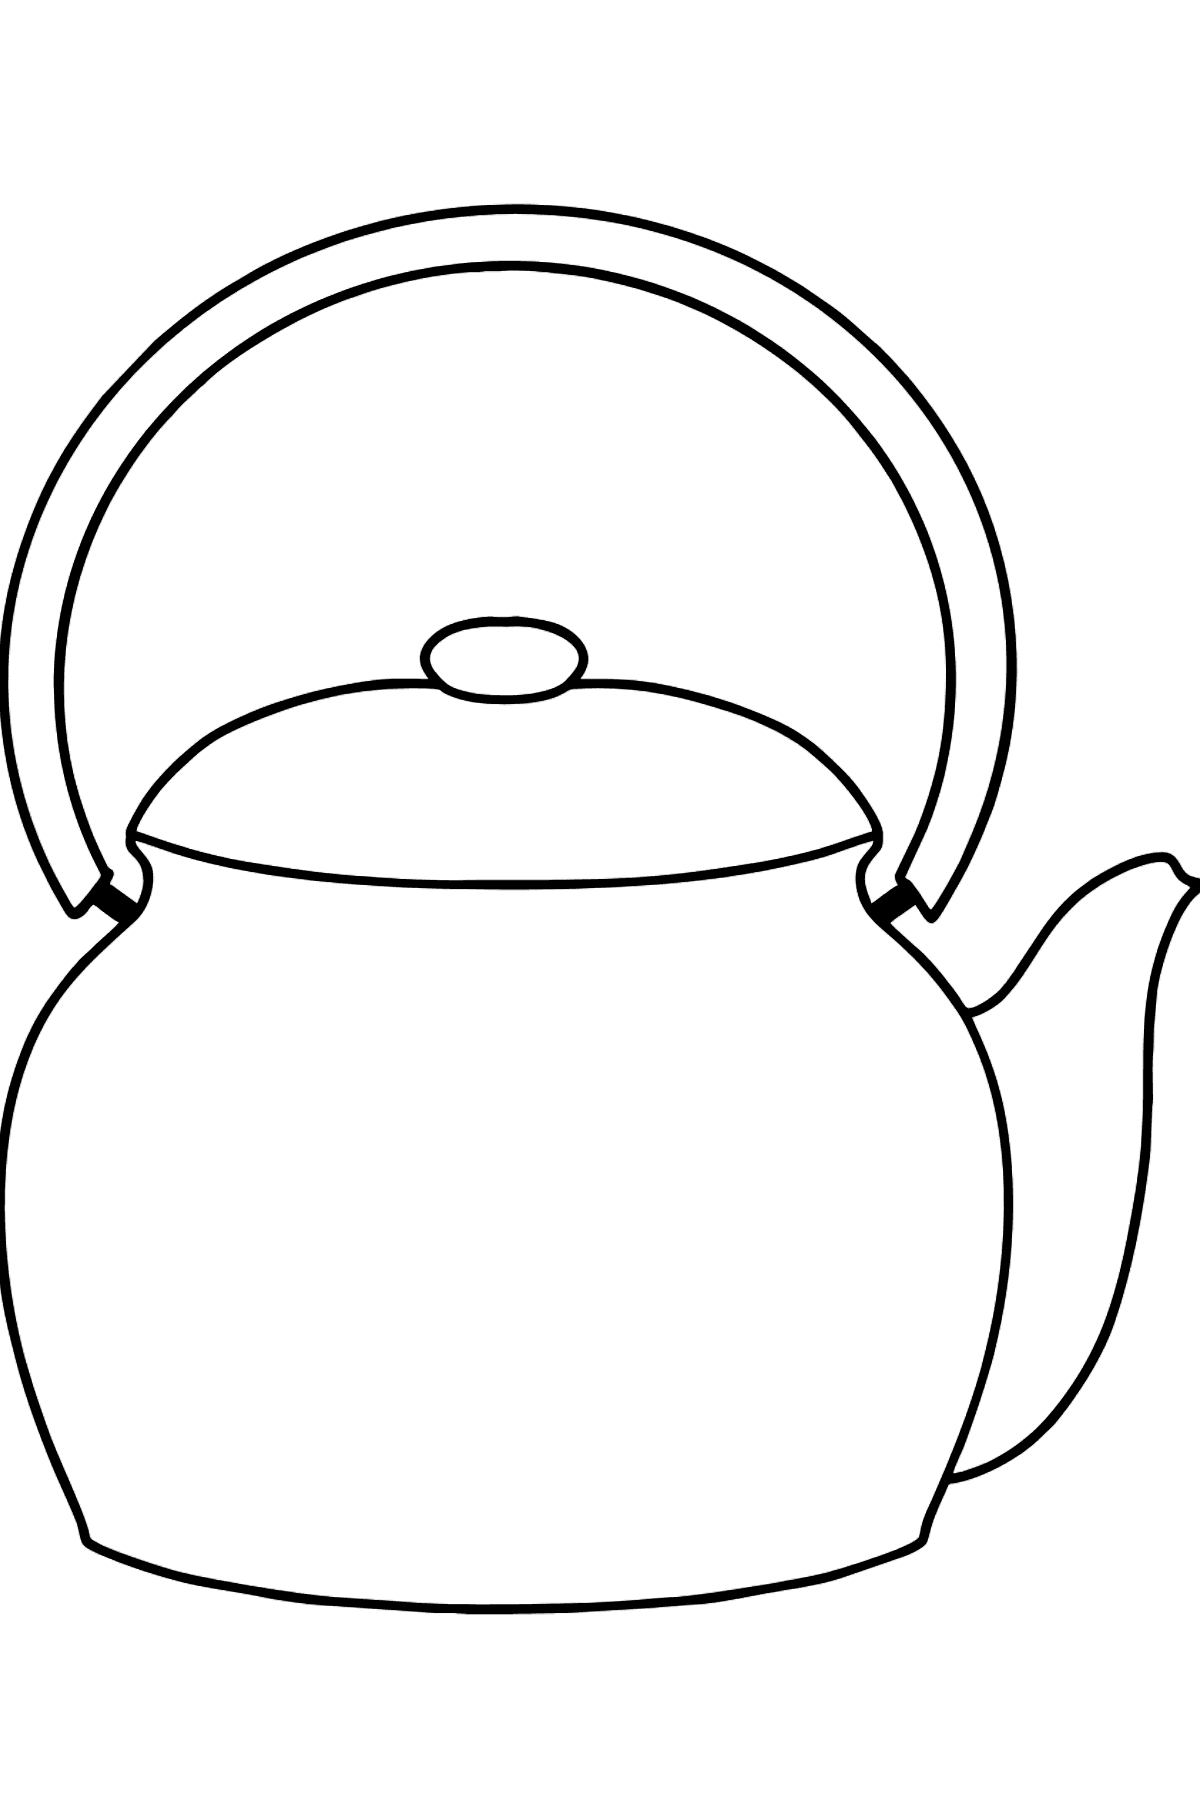 Teapot coloring page - Coloring Pages for Kids